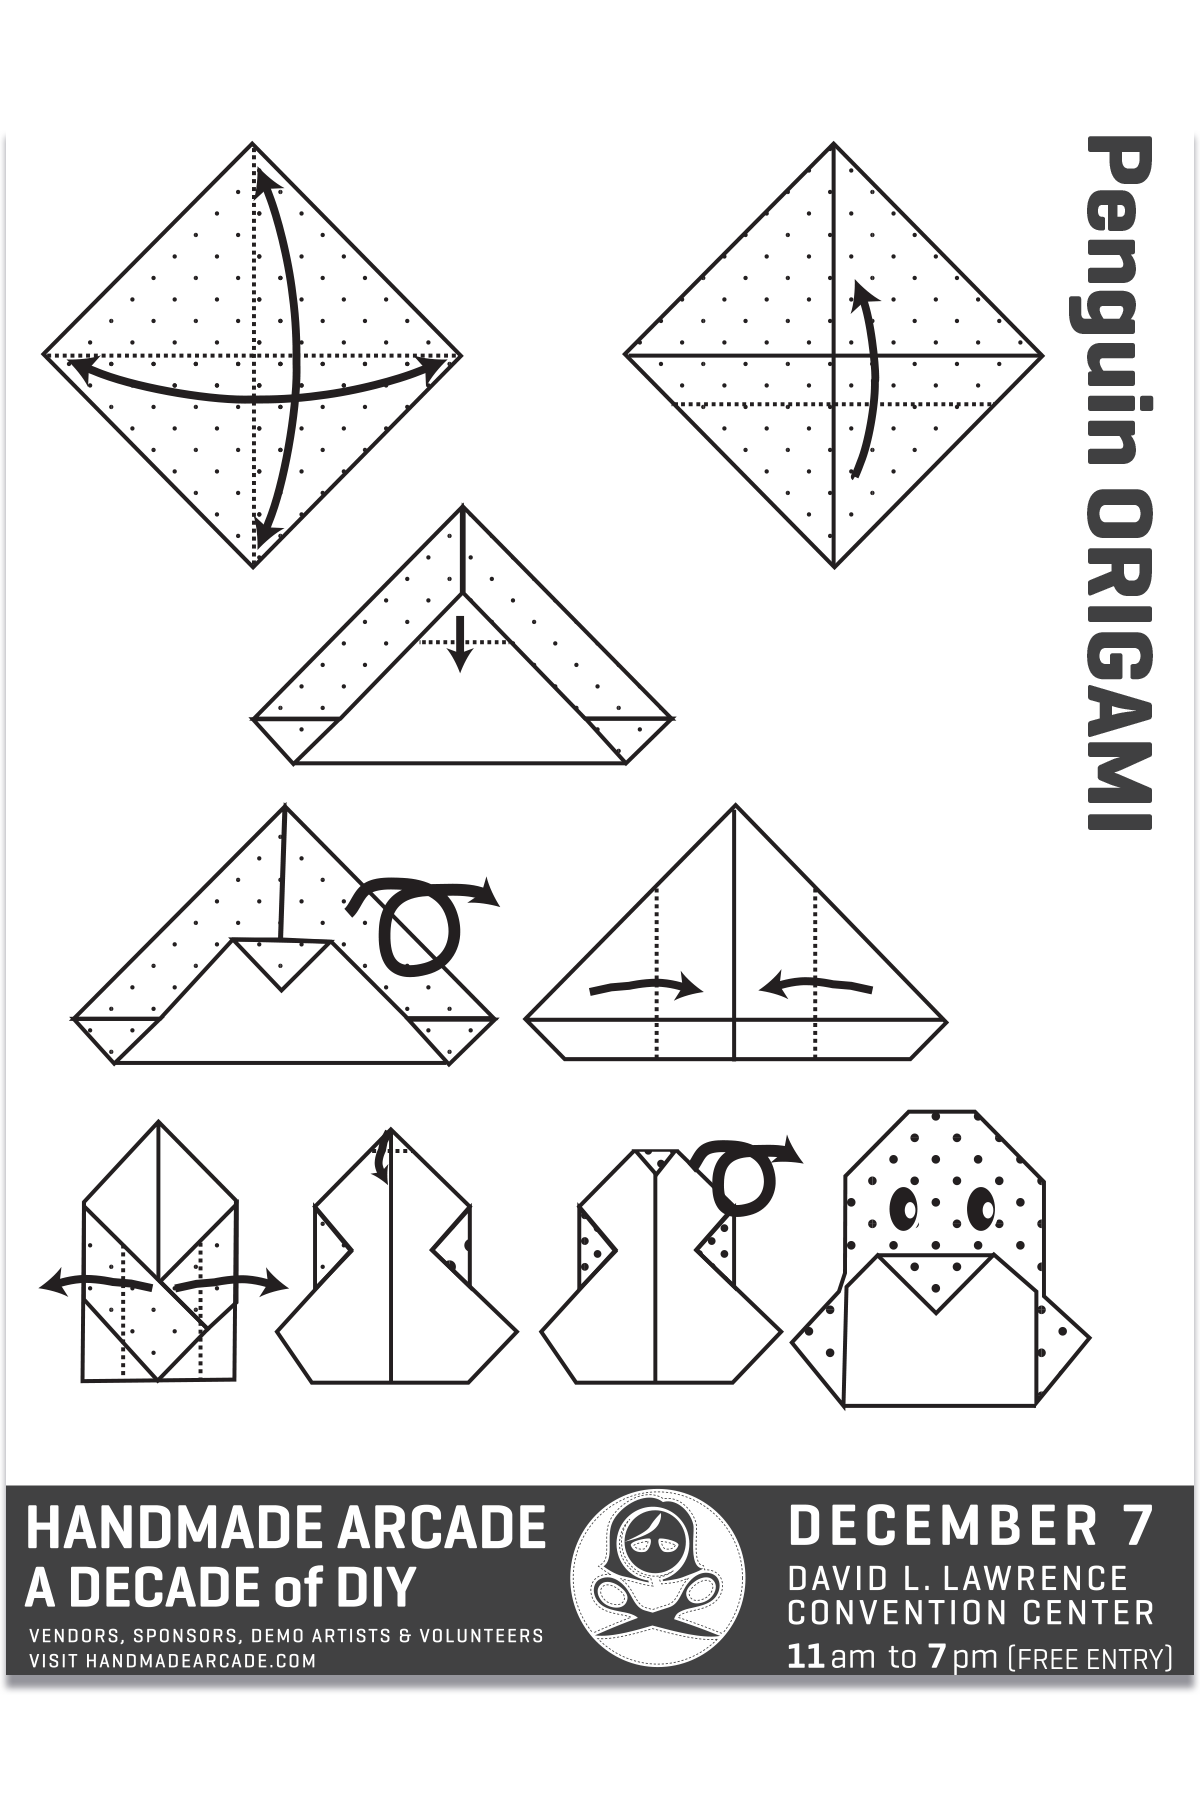 Crafting coloring card created for various outreach events